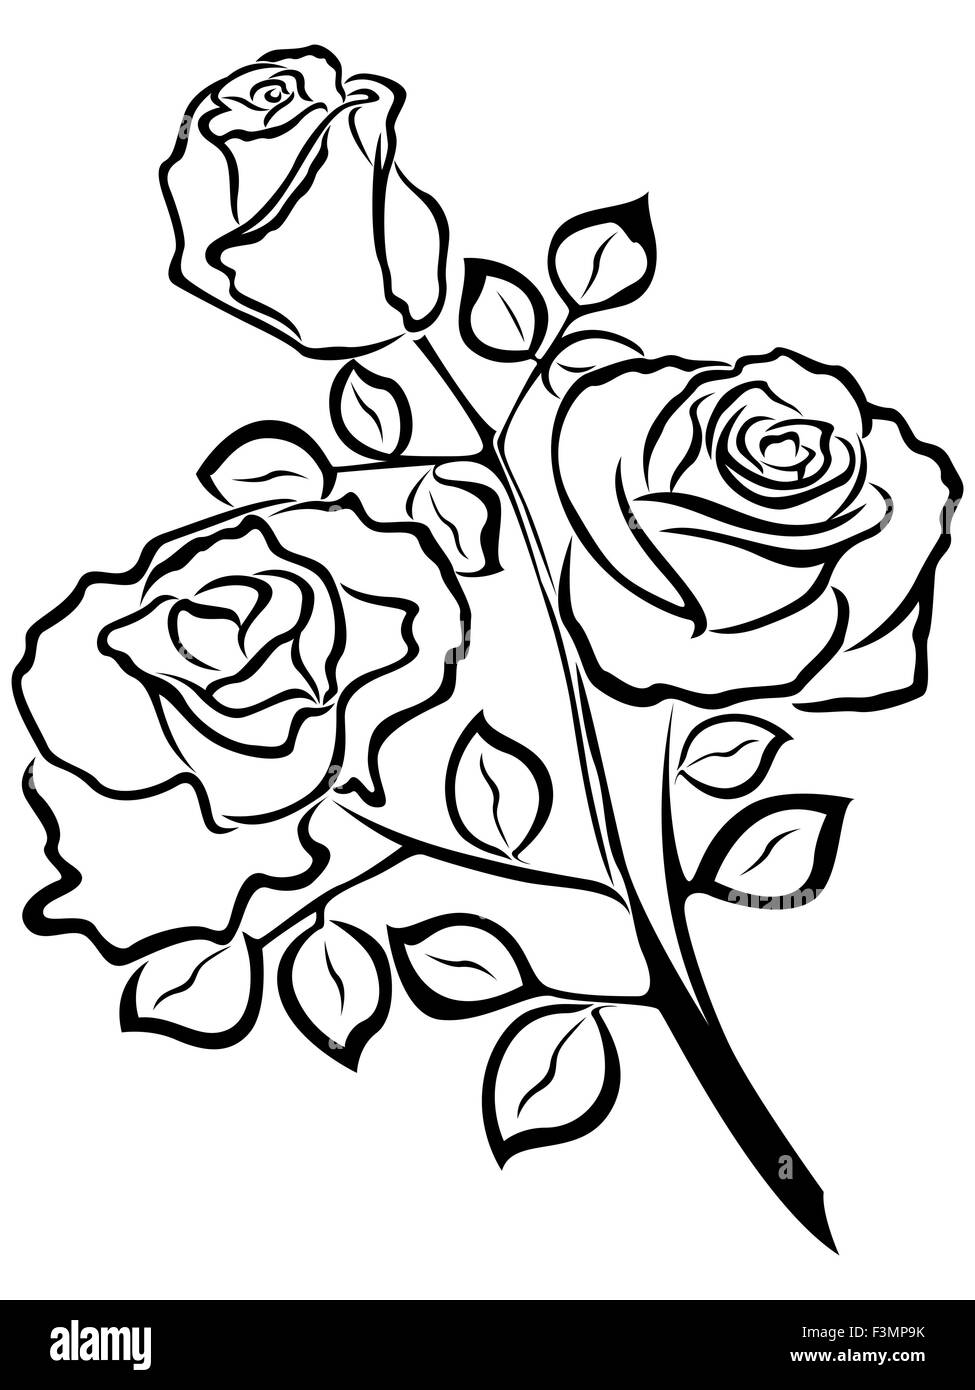 Black Outline Of Rose Flowers Isolated On A White Background Vector